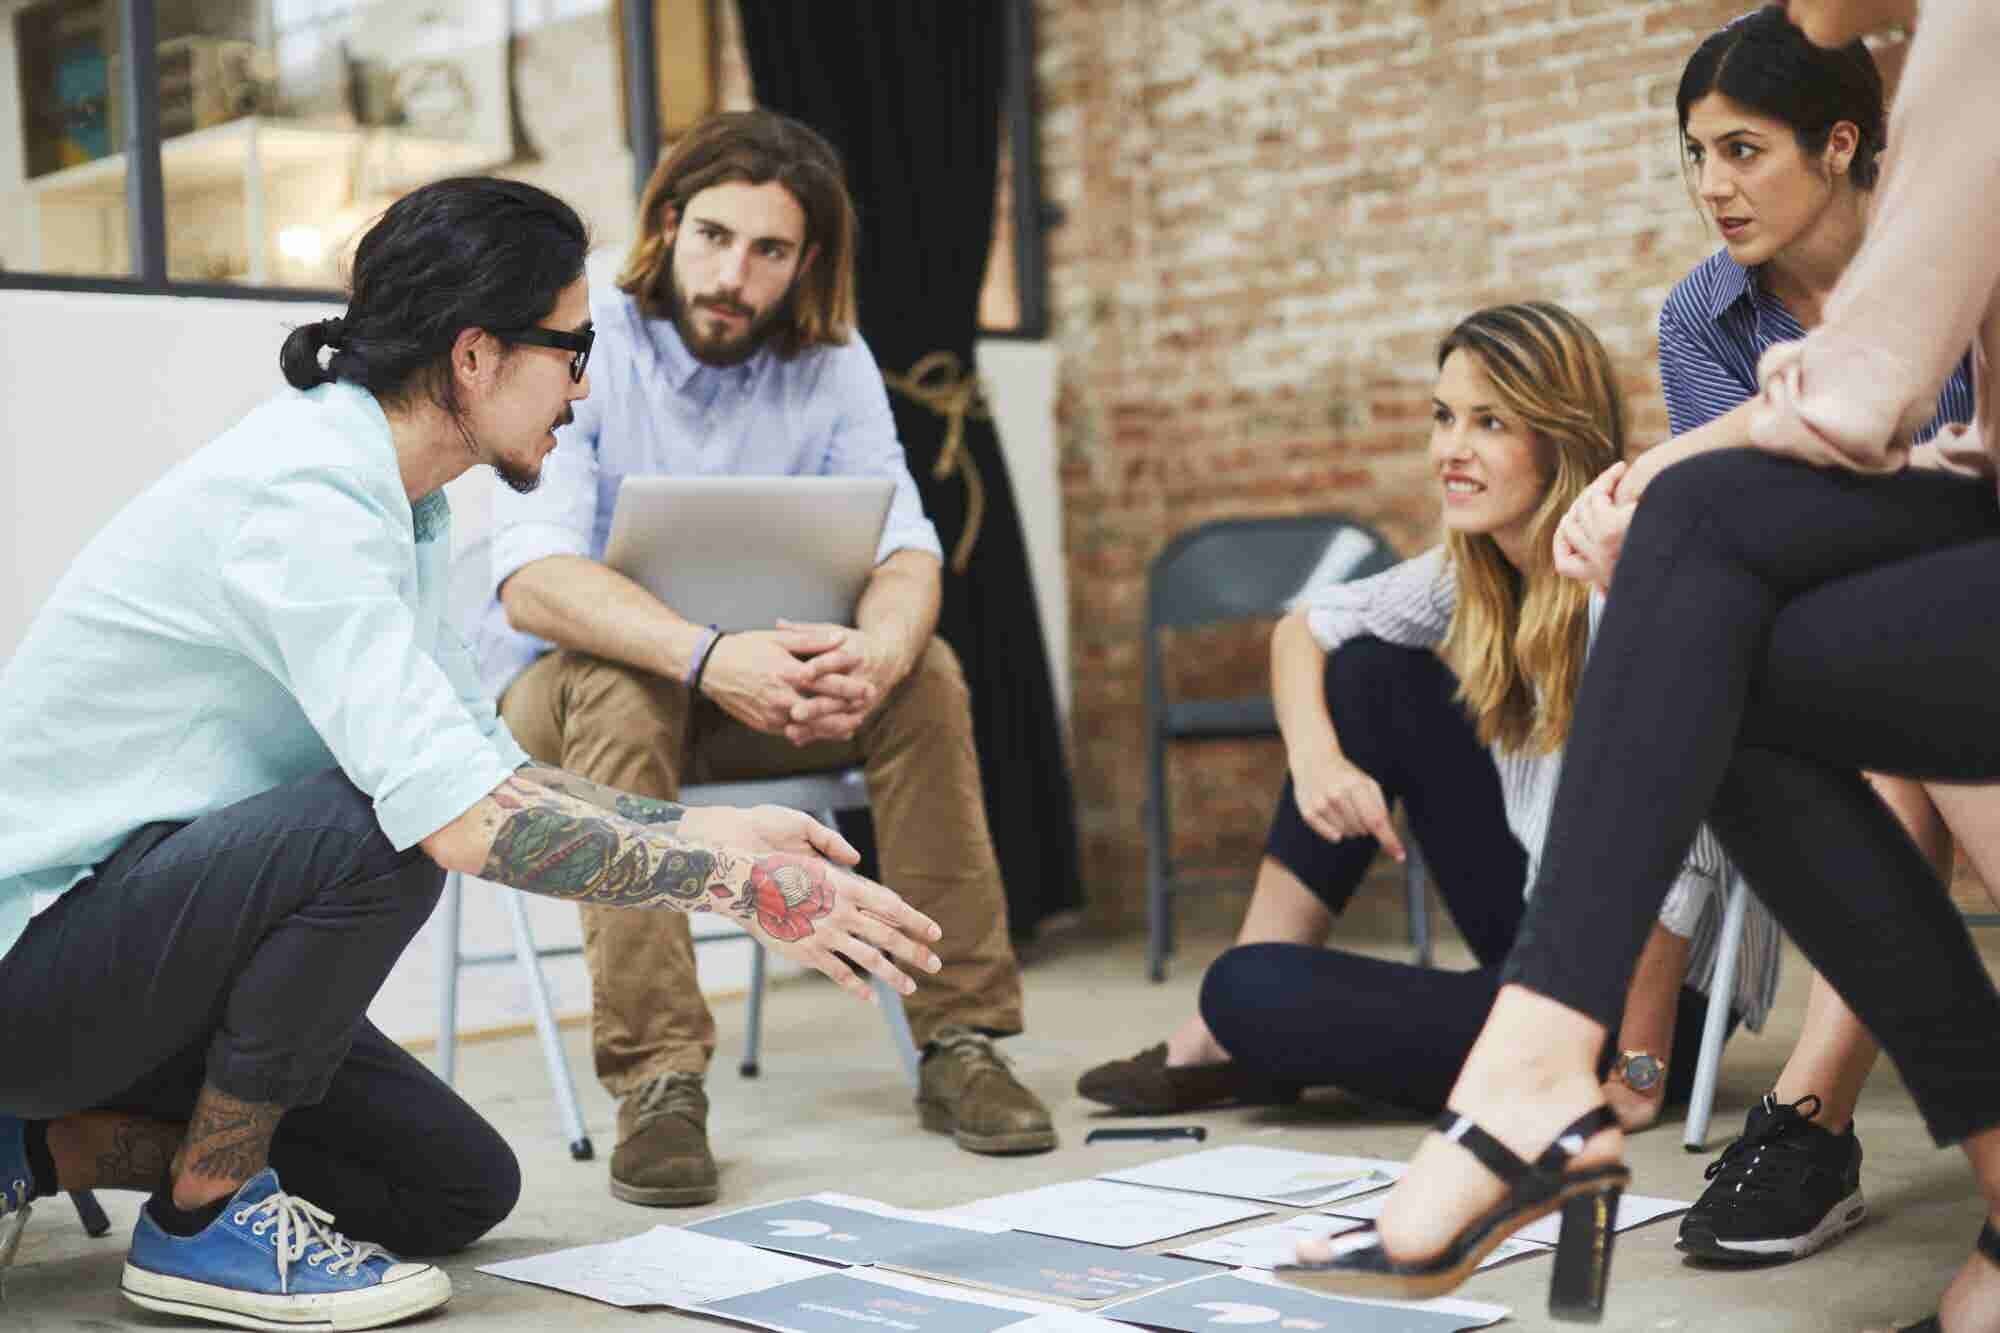 How to Launch a New Brand: 4 Tips that Work